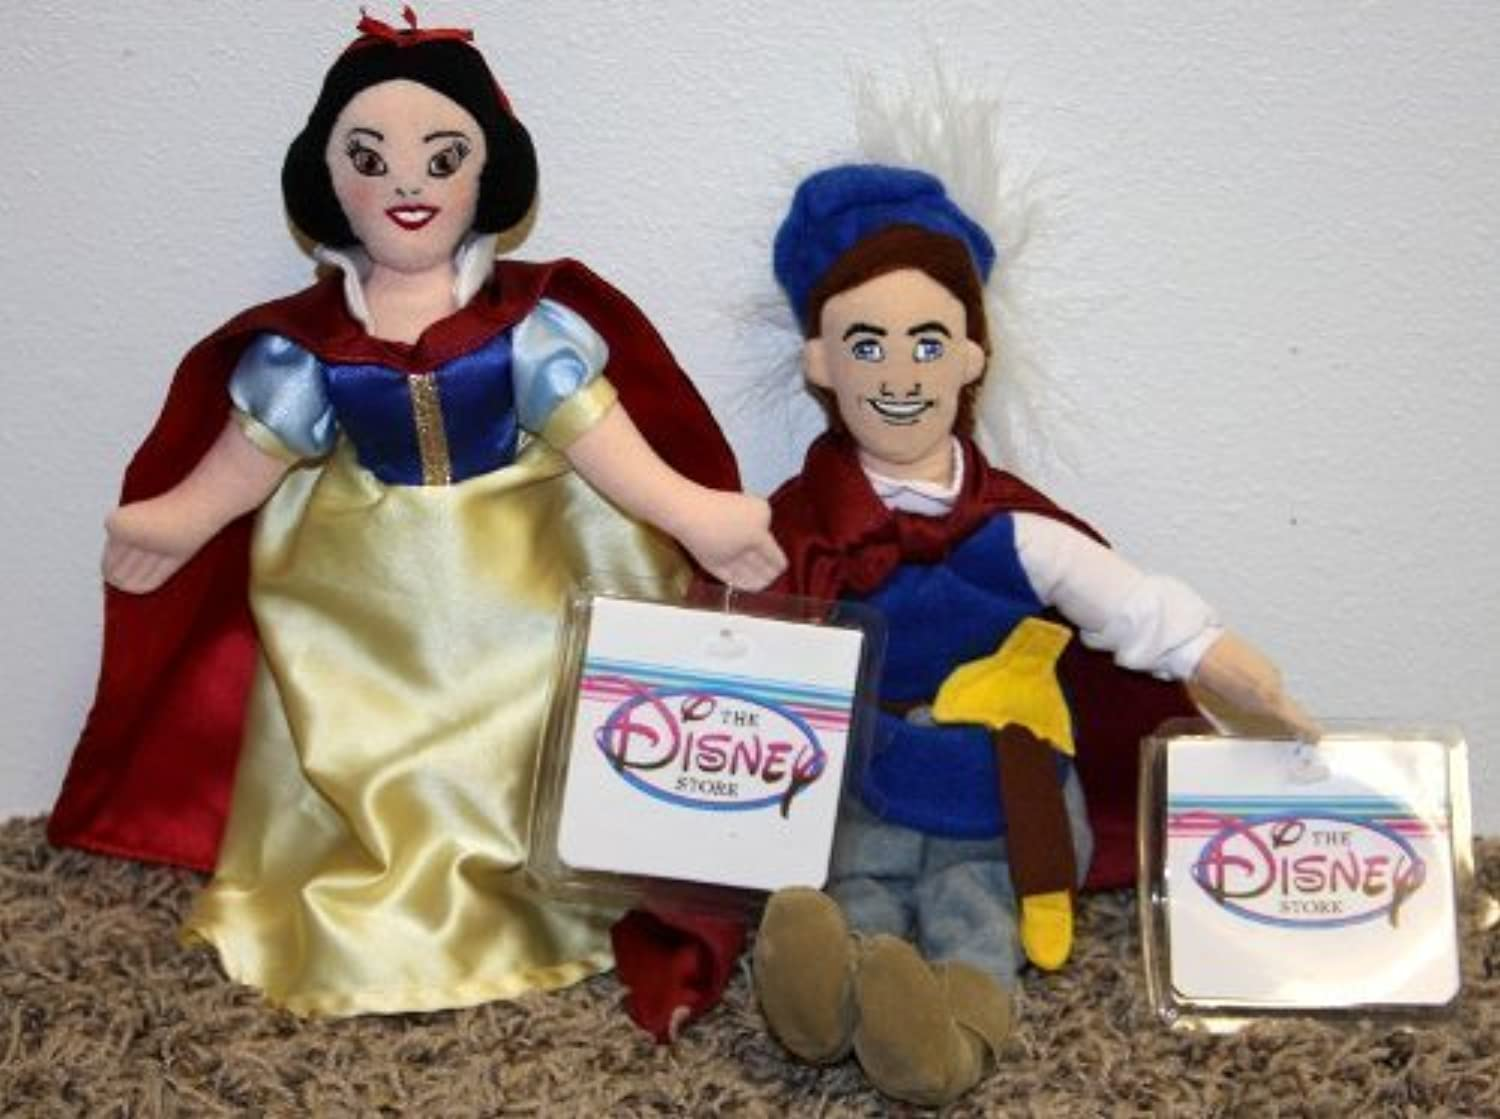 Retirot Disney Princess and Snow Weiß and Snow Weiß Prince Set of Plush Bean Bag Dolls Mint with Tags by Disney